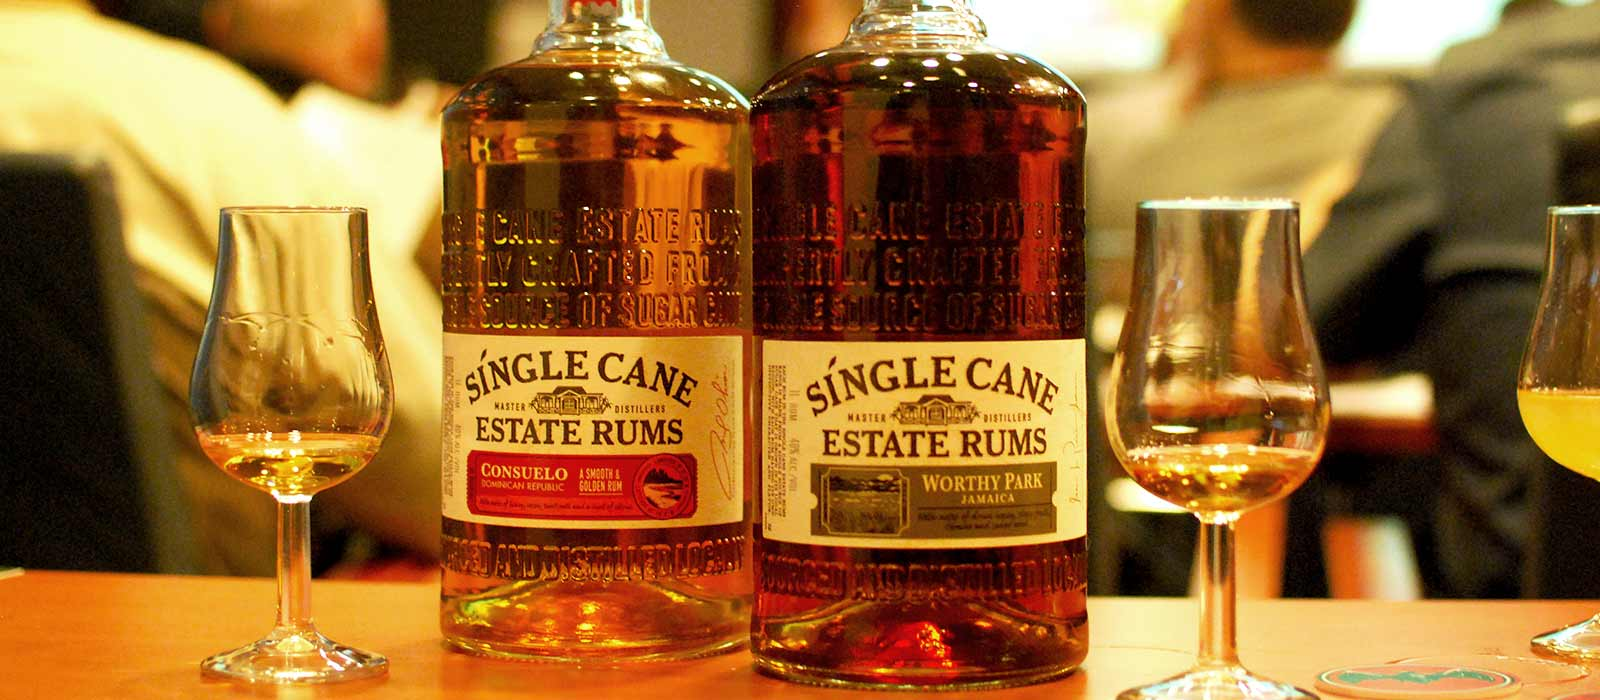 Provning: Bacardi Single Cane Estate Rums